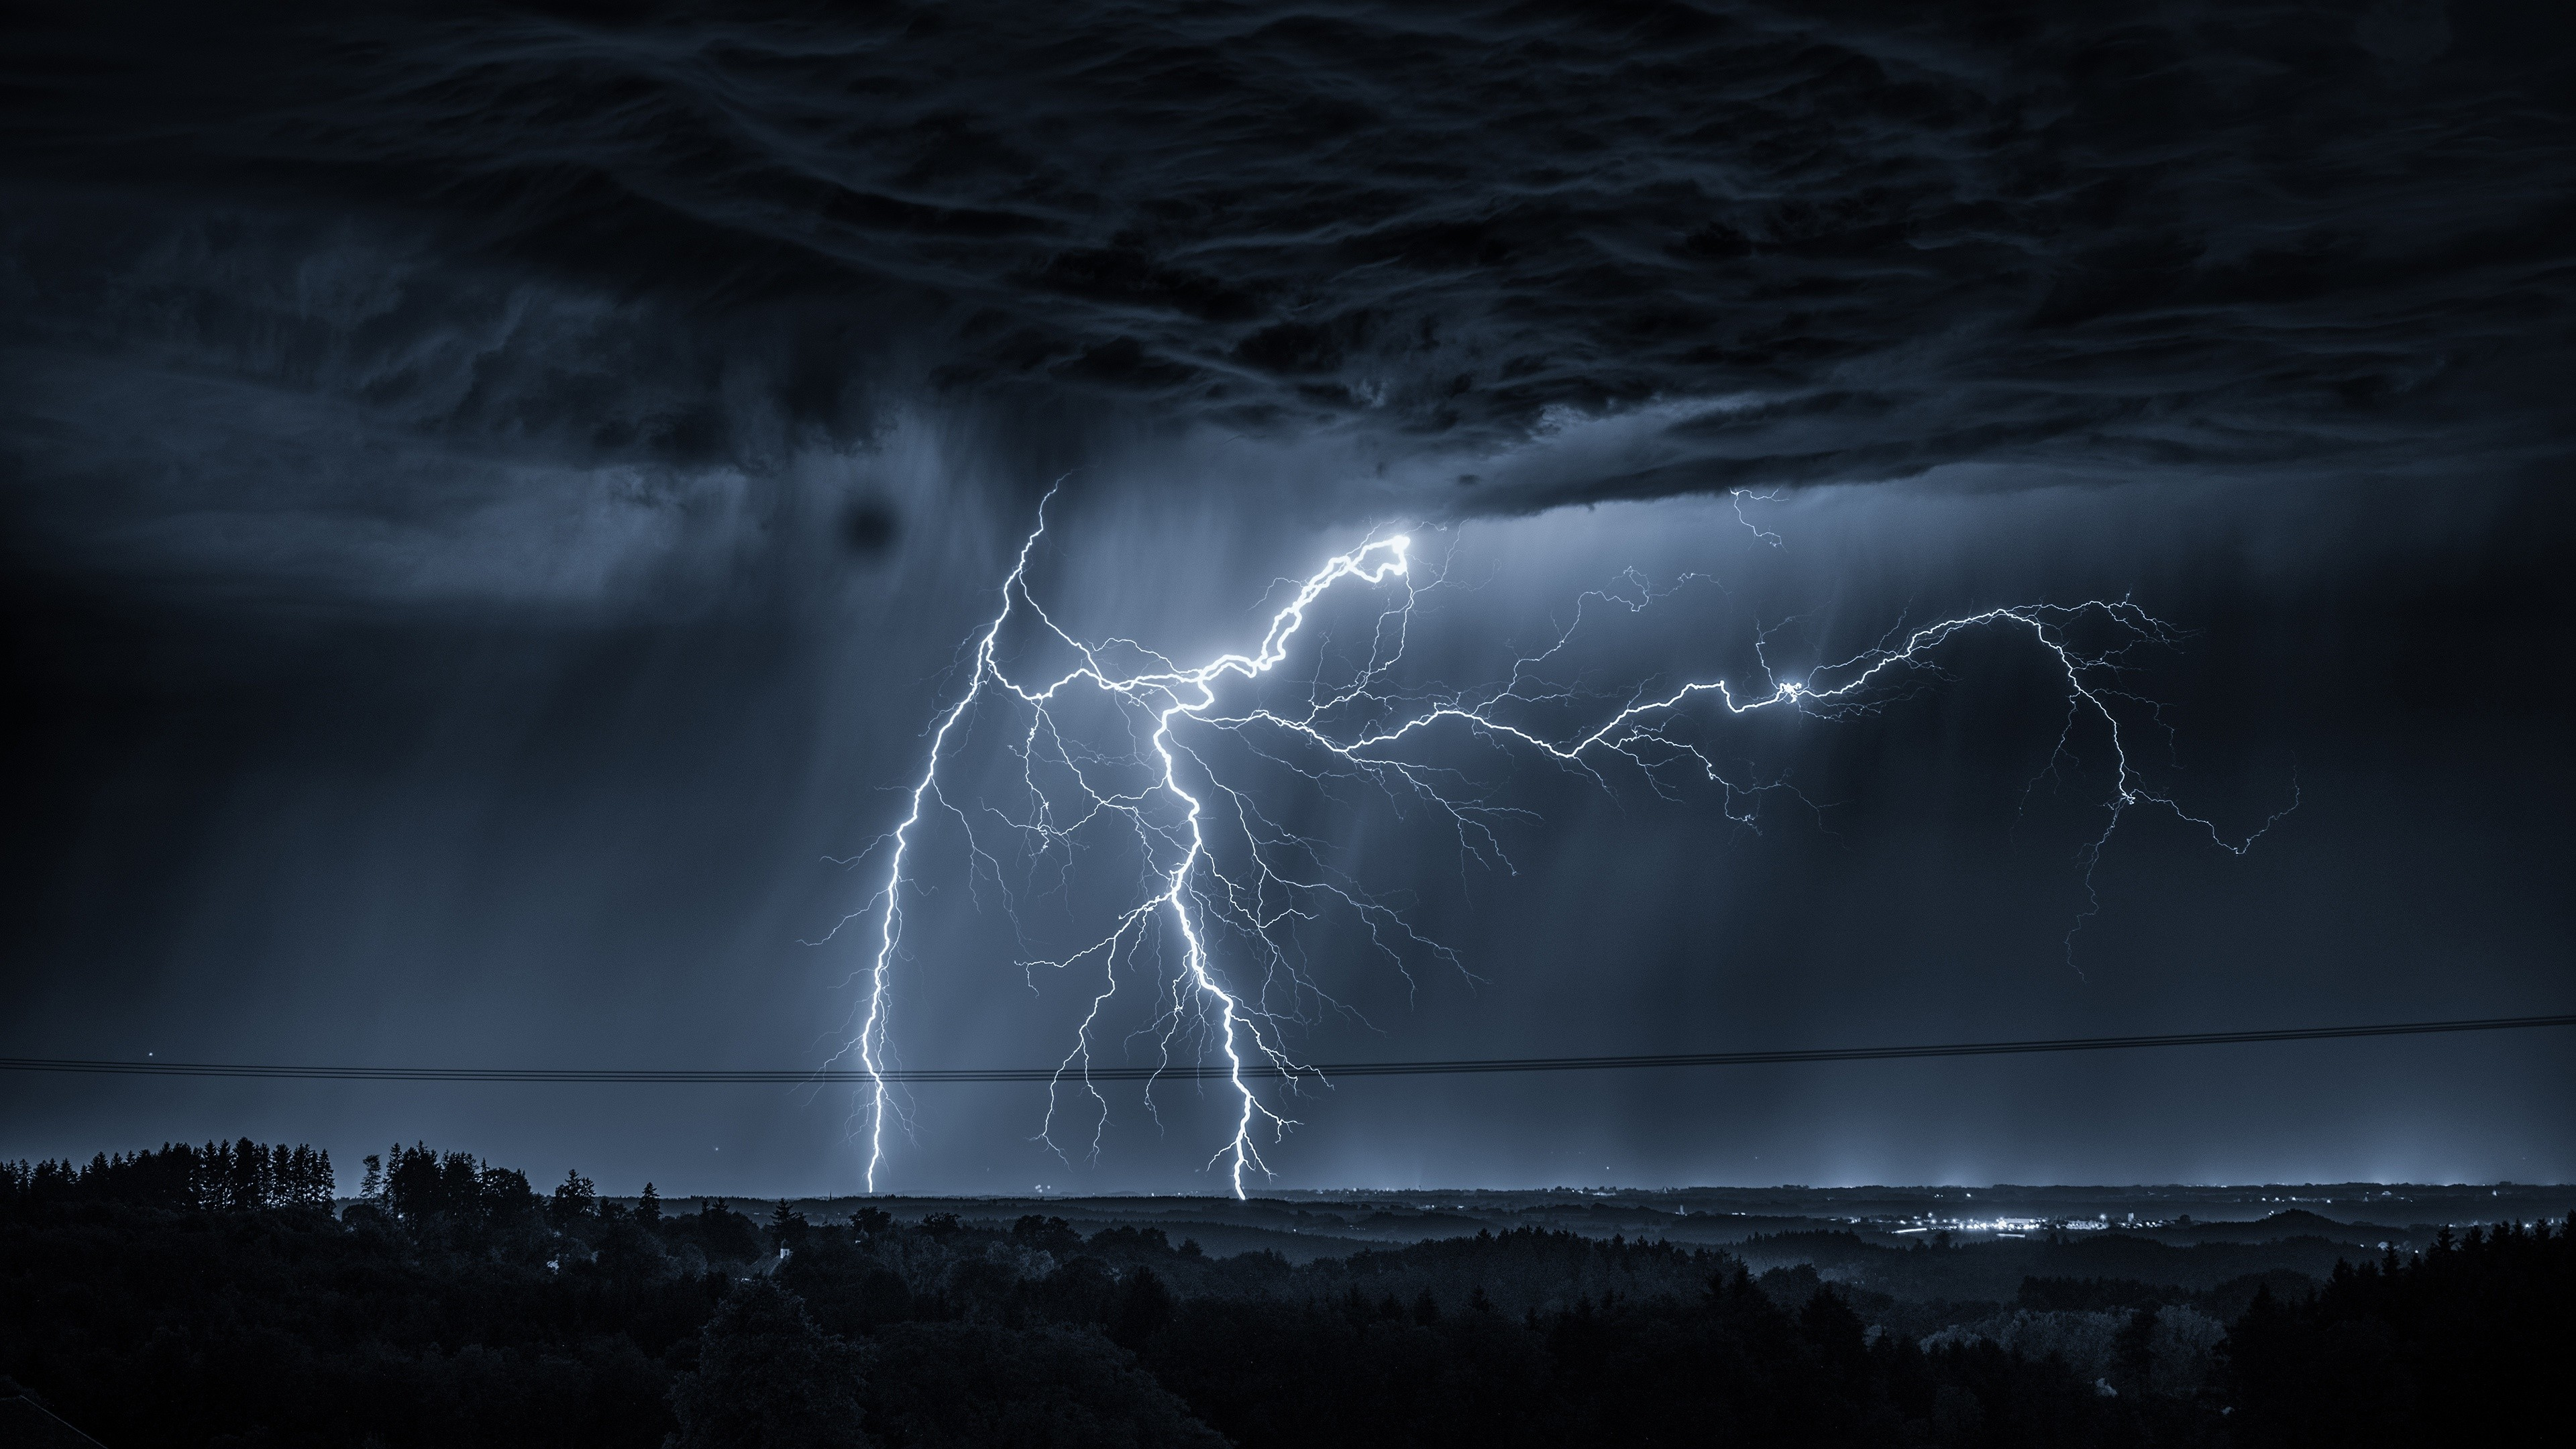 69 Hd Storm Wallpapers on WallpaperPlay 3840x2160